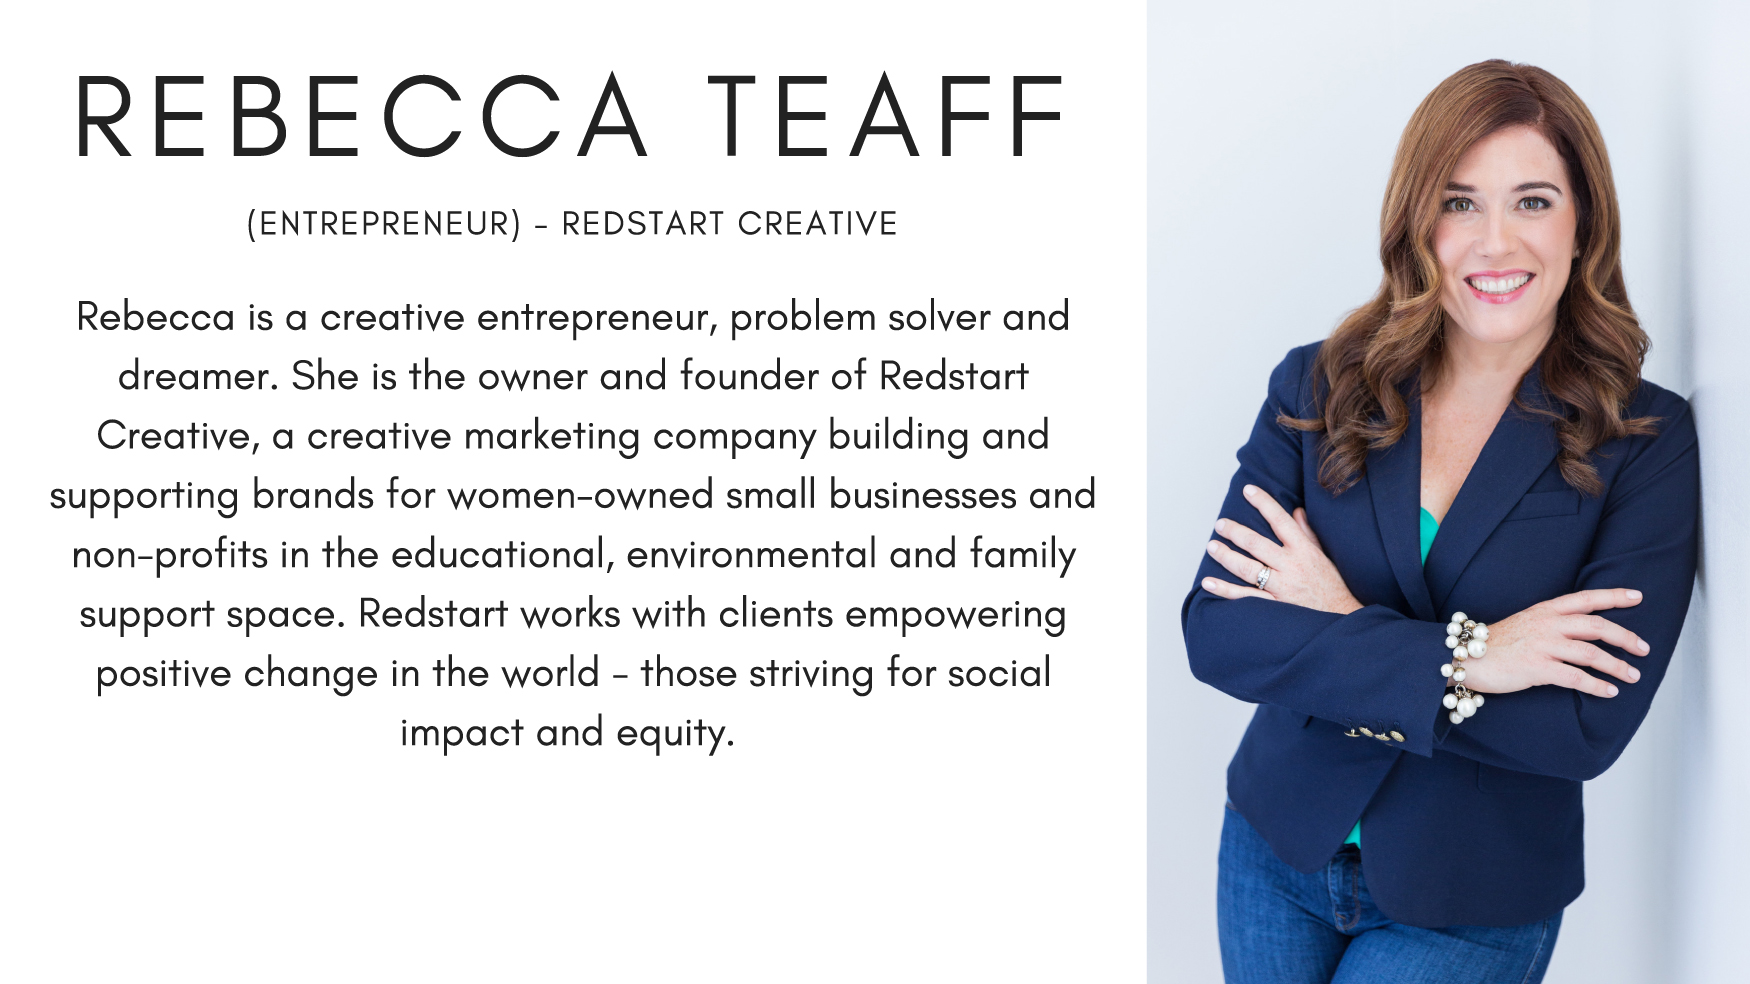 Rebecca Teaff (Entrepreneur) - Redstart Creative. Rebecca is a creative entrepreneur, problem solver and dreamer. She is the owner and founder of Redstart Creative, a creative marketing company building and supporting brands for women-owned small businesses and non-profits in the educational, environmental and family support space. Redstart works with clients empowering positive change in the world - those striving for social impact and equity.